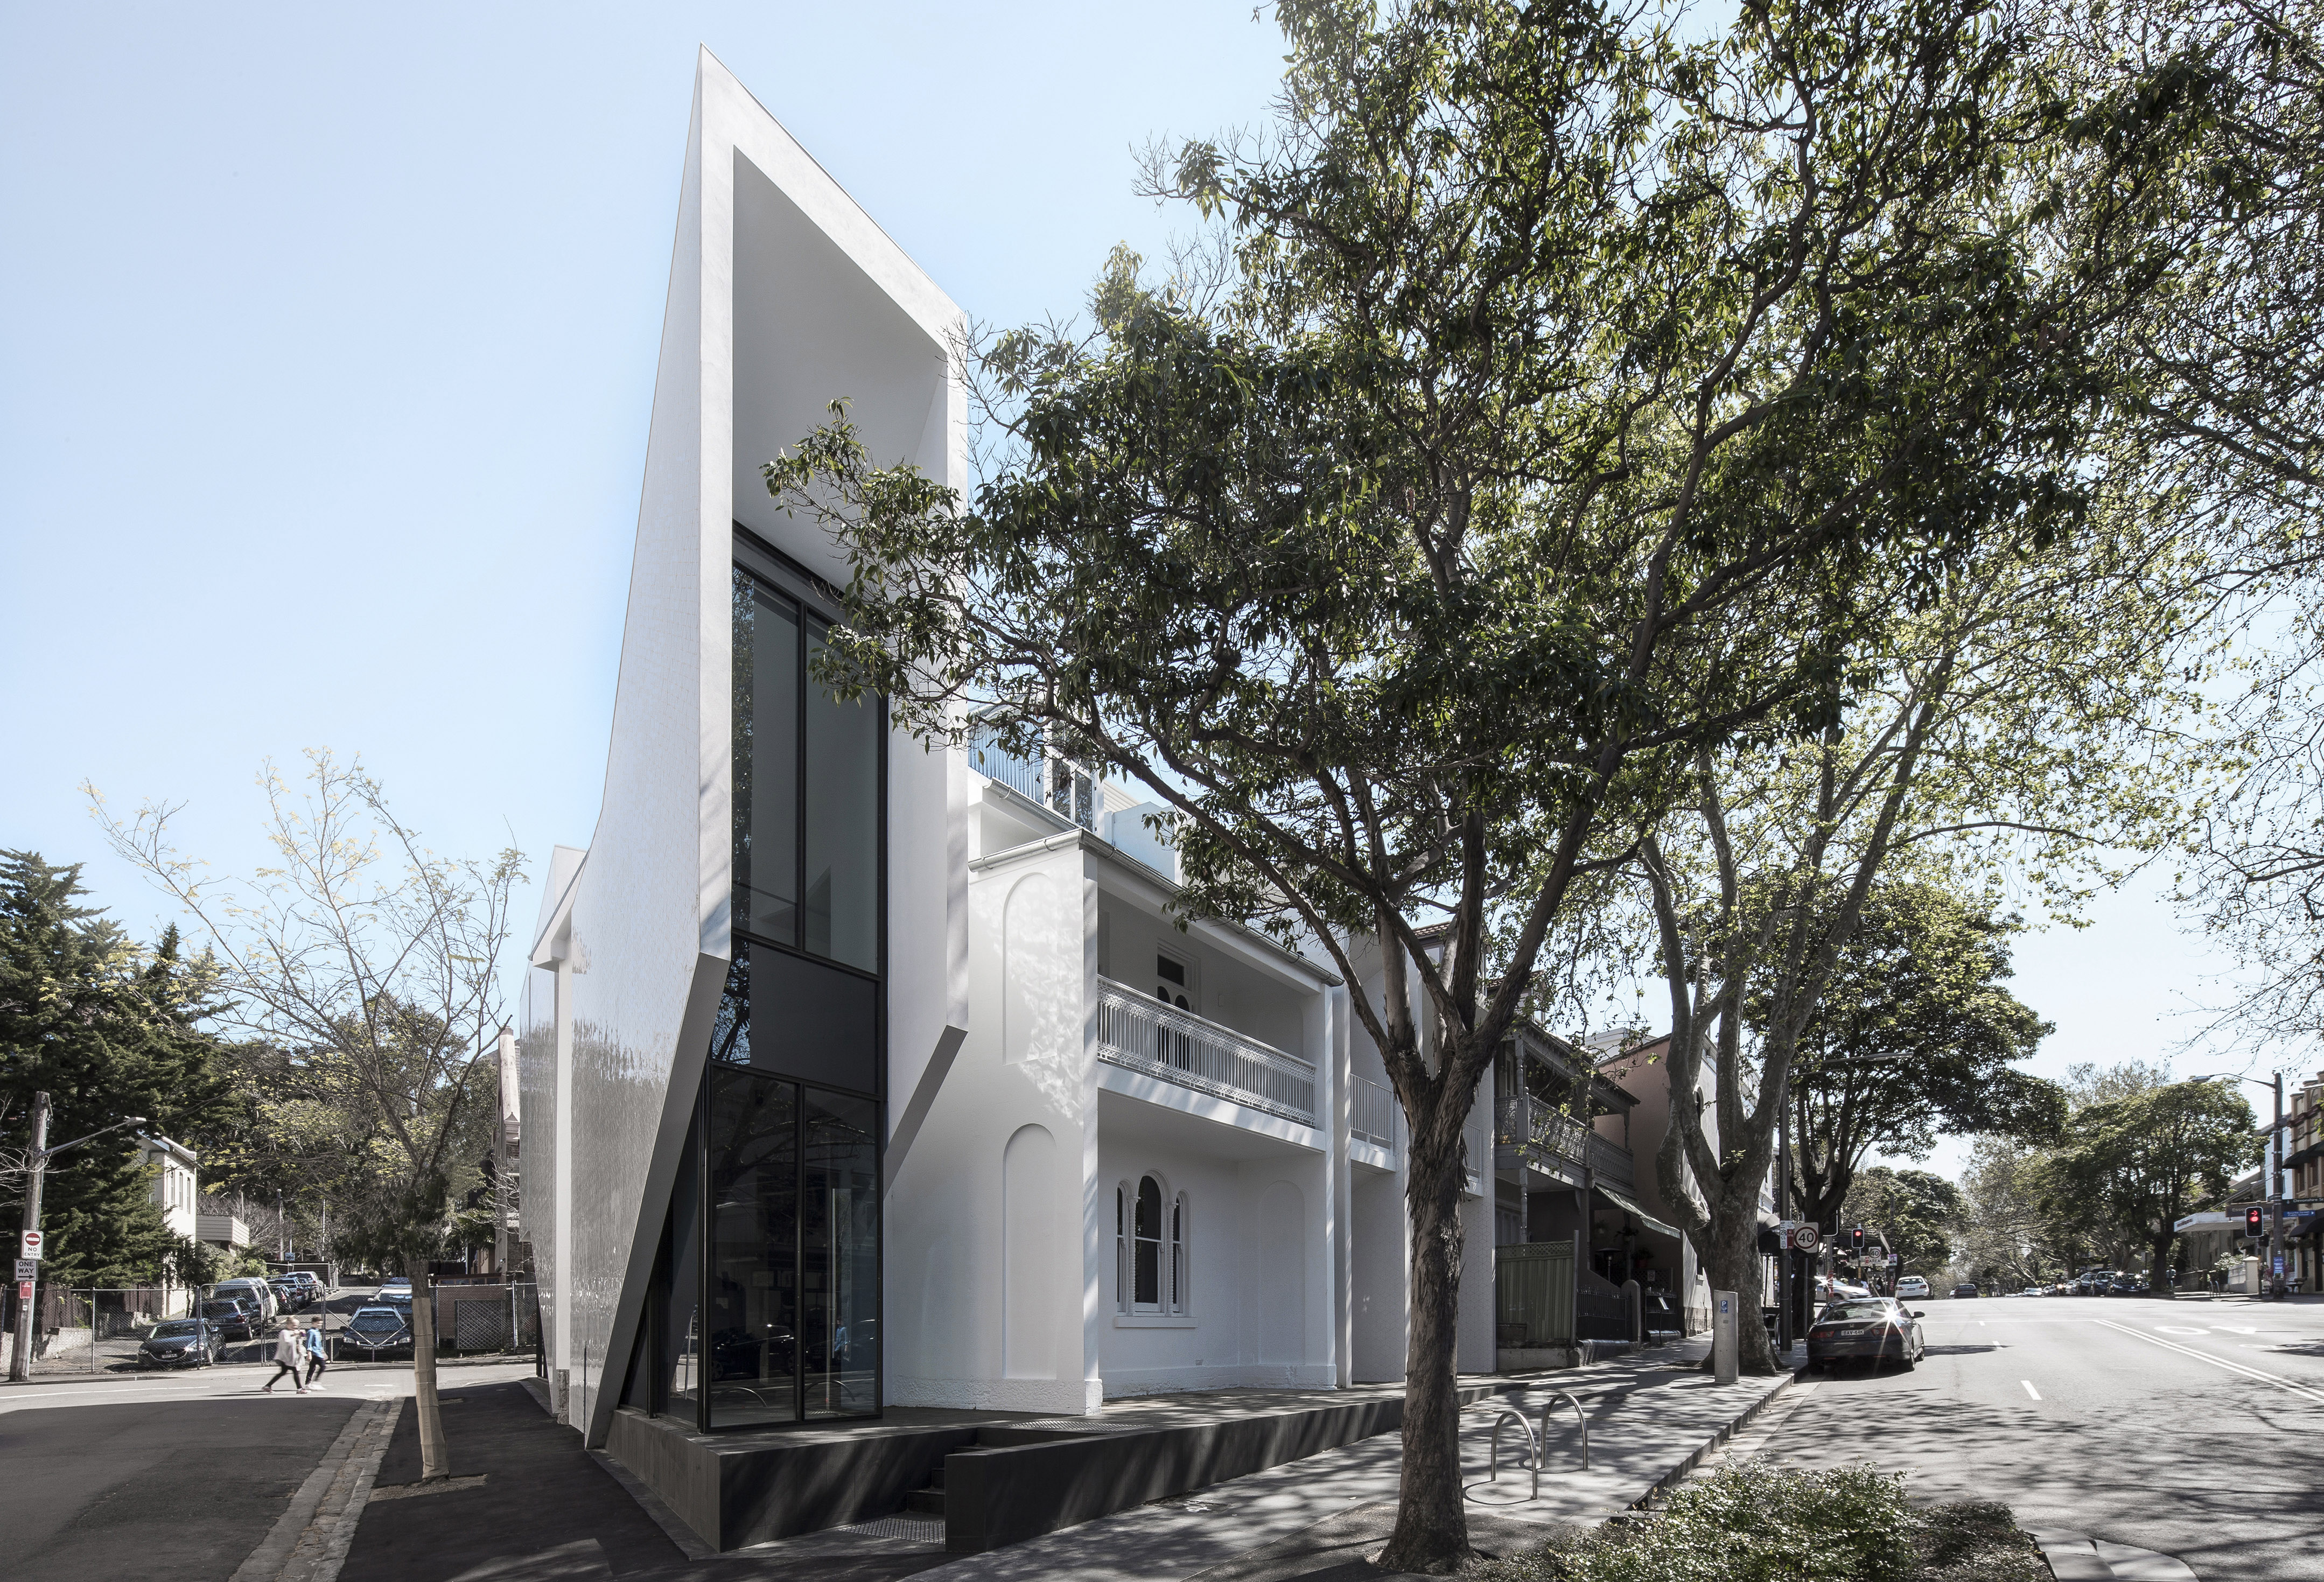 Crown 515-Smart Design Studio-The Local Project-Australian Architecture & Design-Image 1